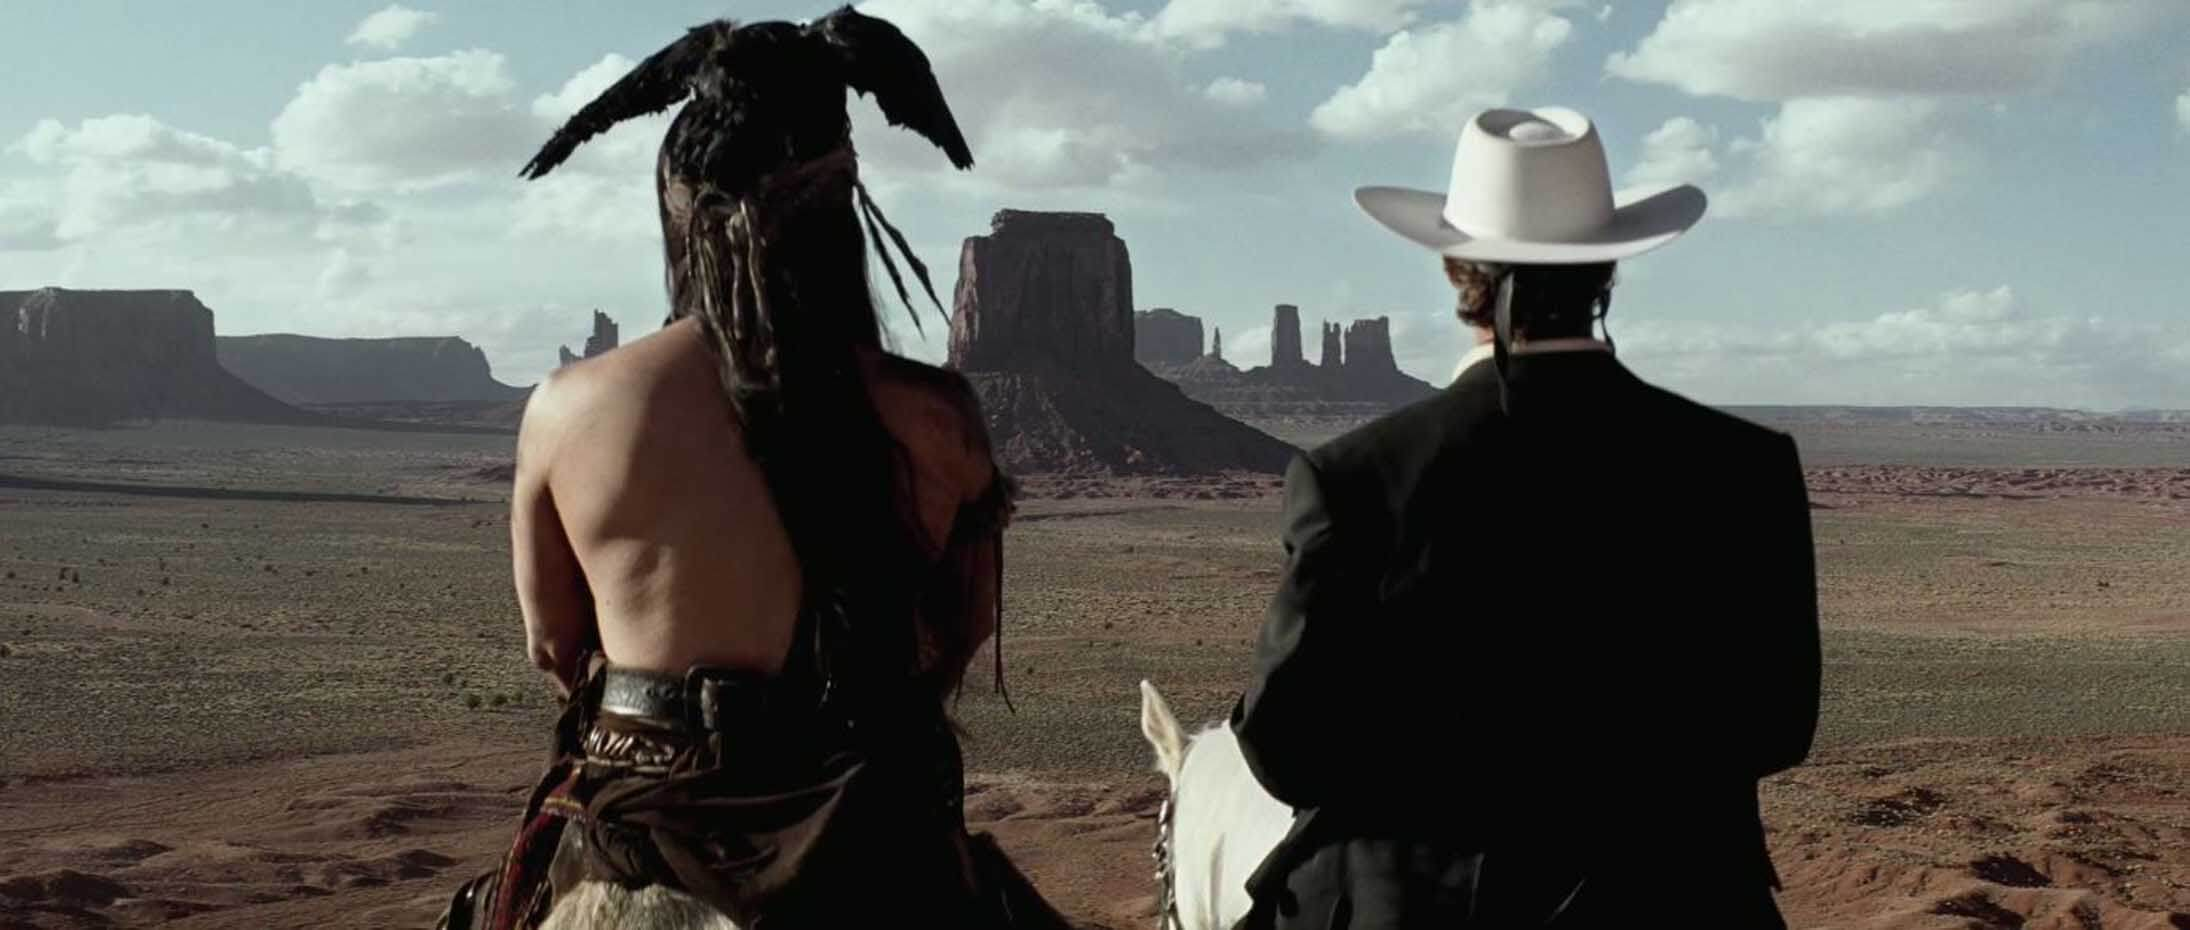 The Lone Ranger and Tonto look out over Monument Valley in the movie The Lone Ranger.